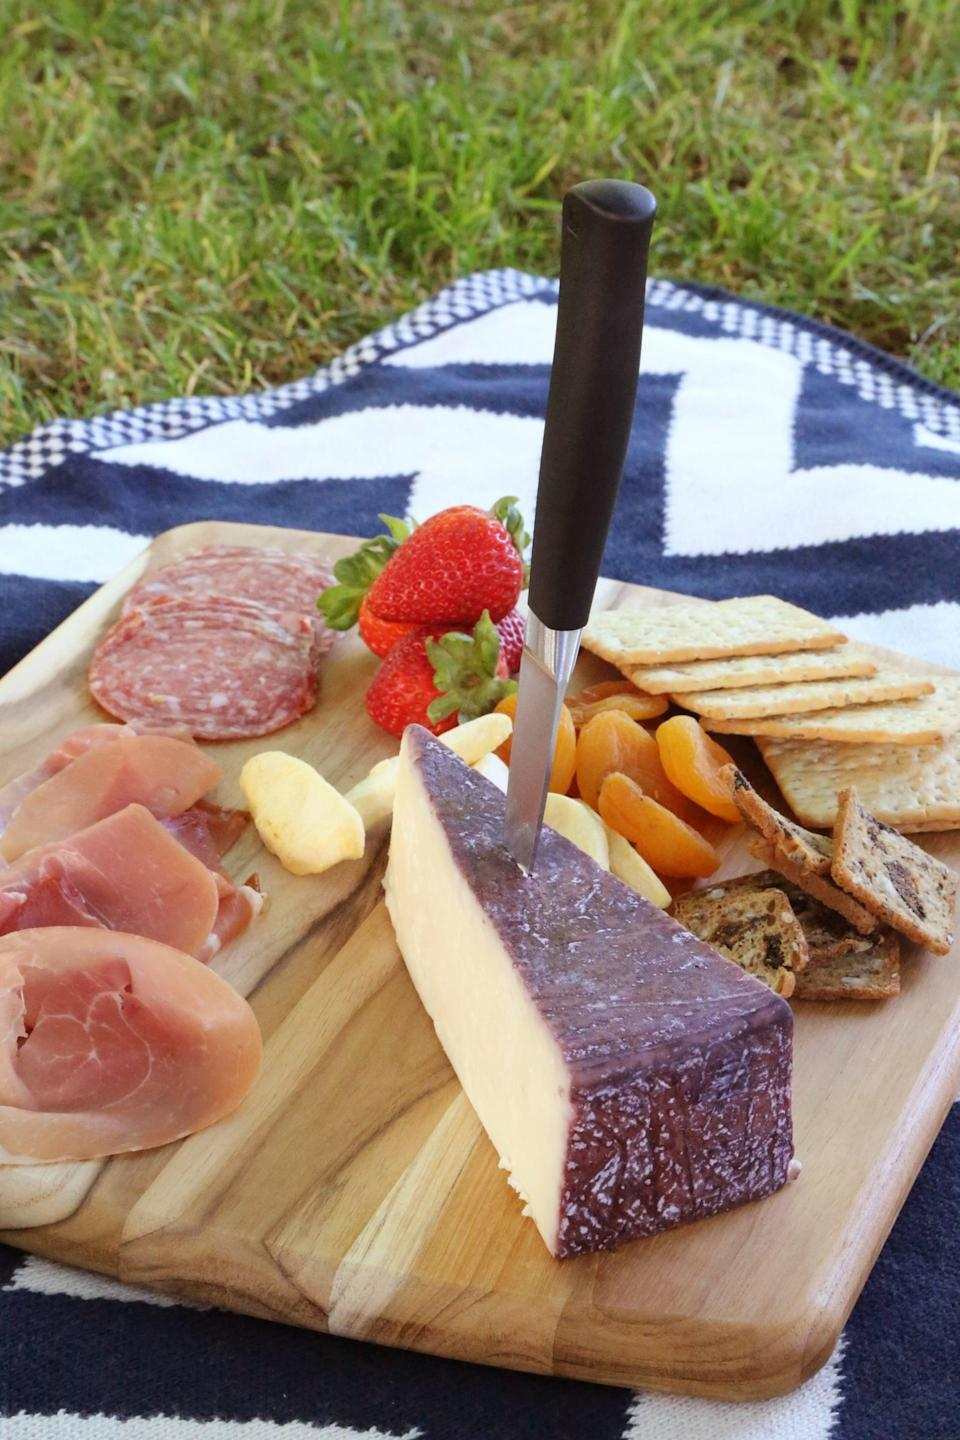 <p>Before you head to your picnic destination, be sure you have everything you need. There's nothing worse than getting there and realizing you have to sit on itchy grass because you forgot a blanket!</p>